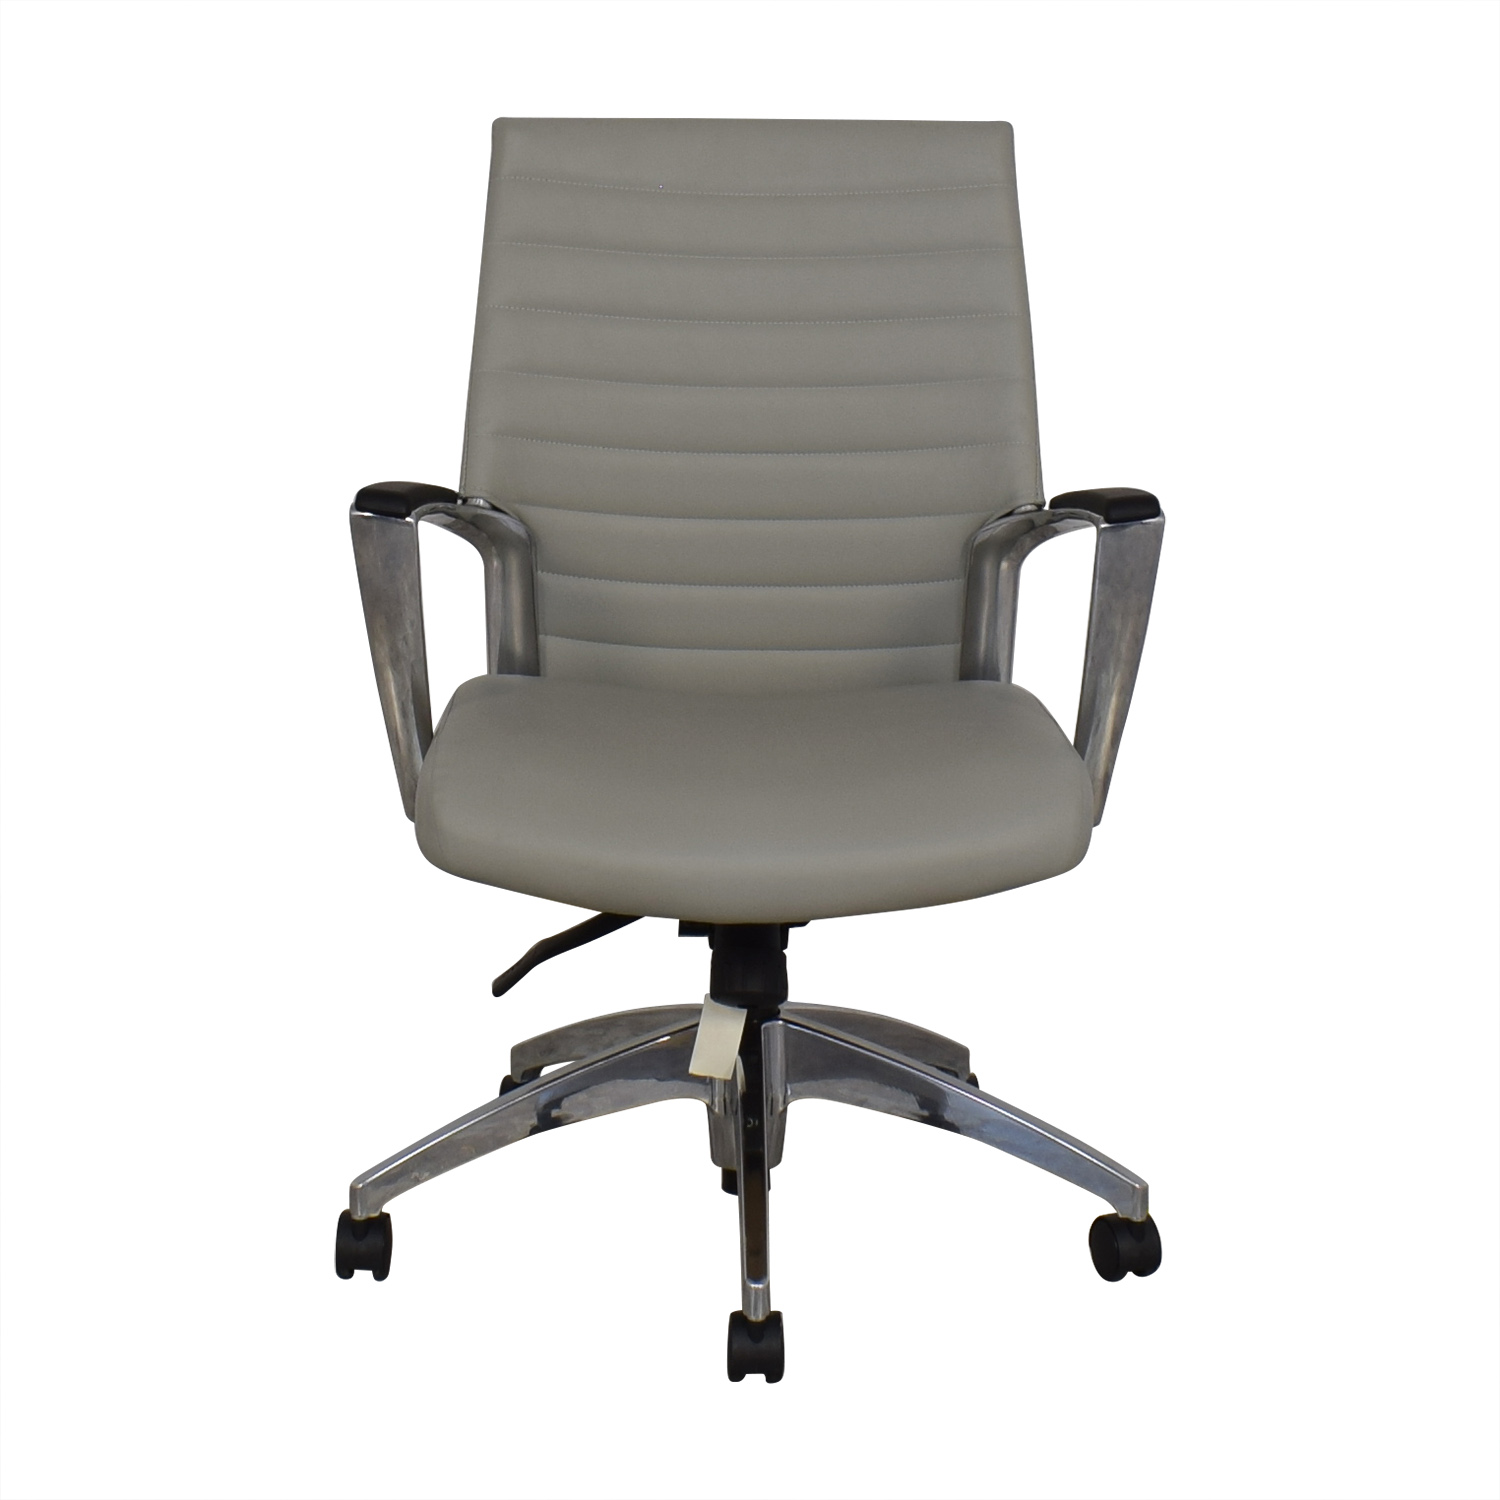 Global Accord Mid Back Tilter Chair / Chairs